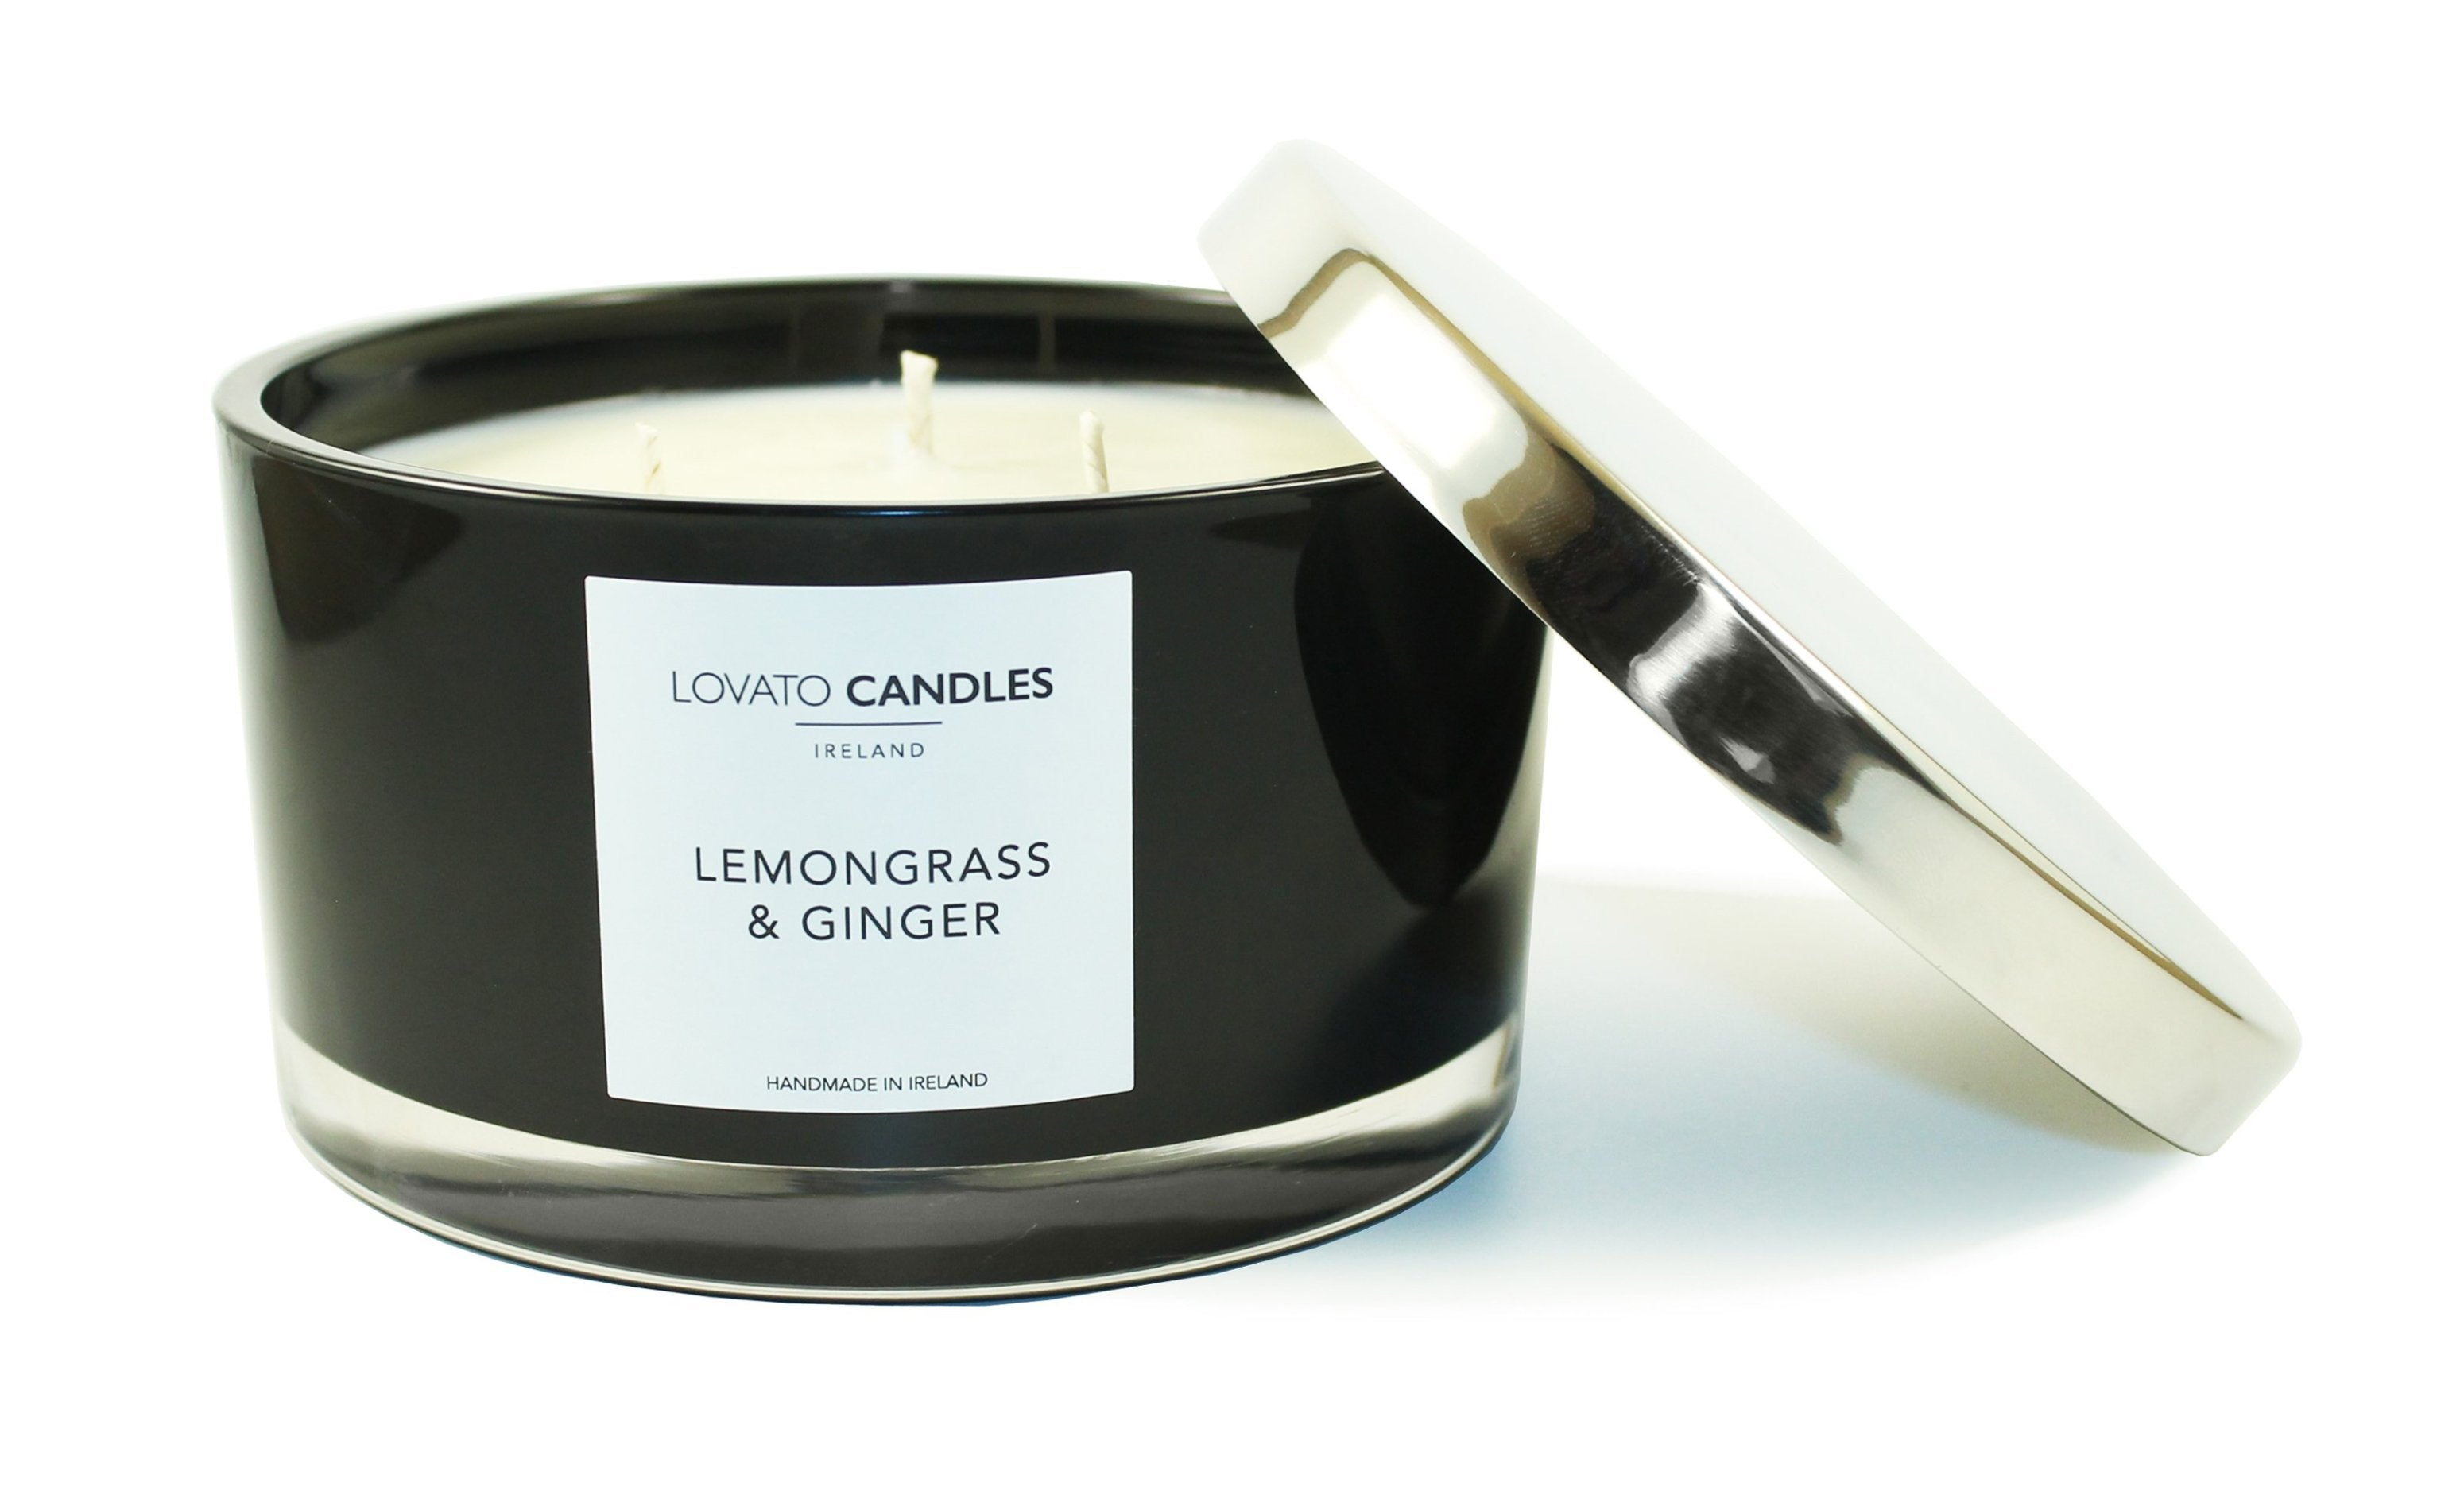 Black 3-Wick Candle - Lemongrass & Ginger - Lovato Candles